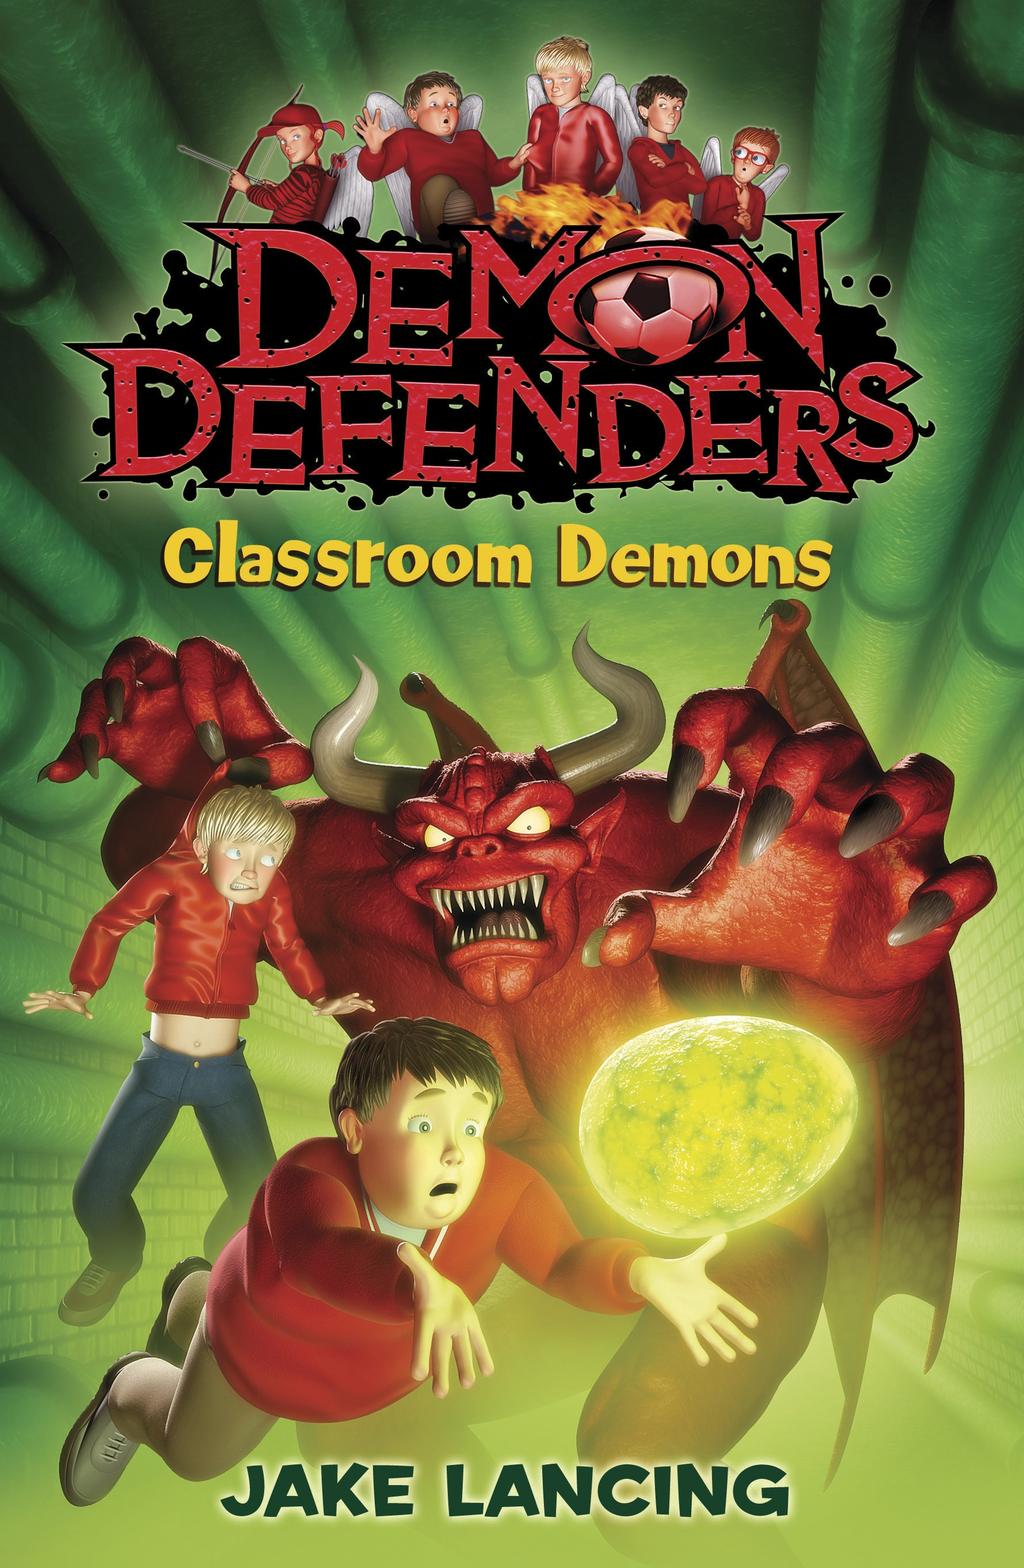 Demon Defenders: Classroom Demons